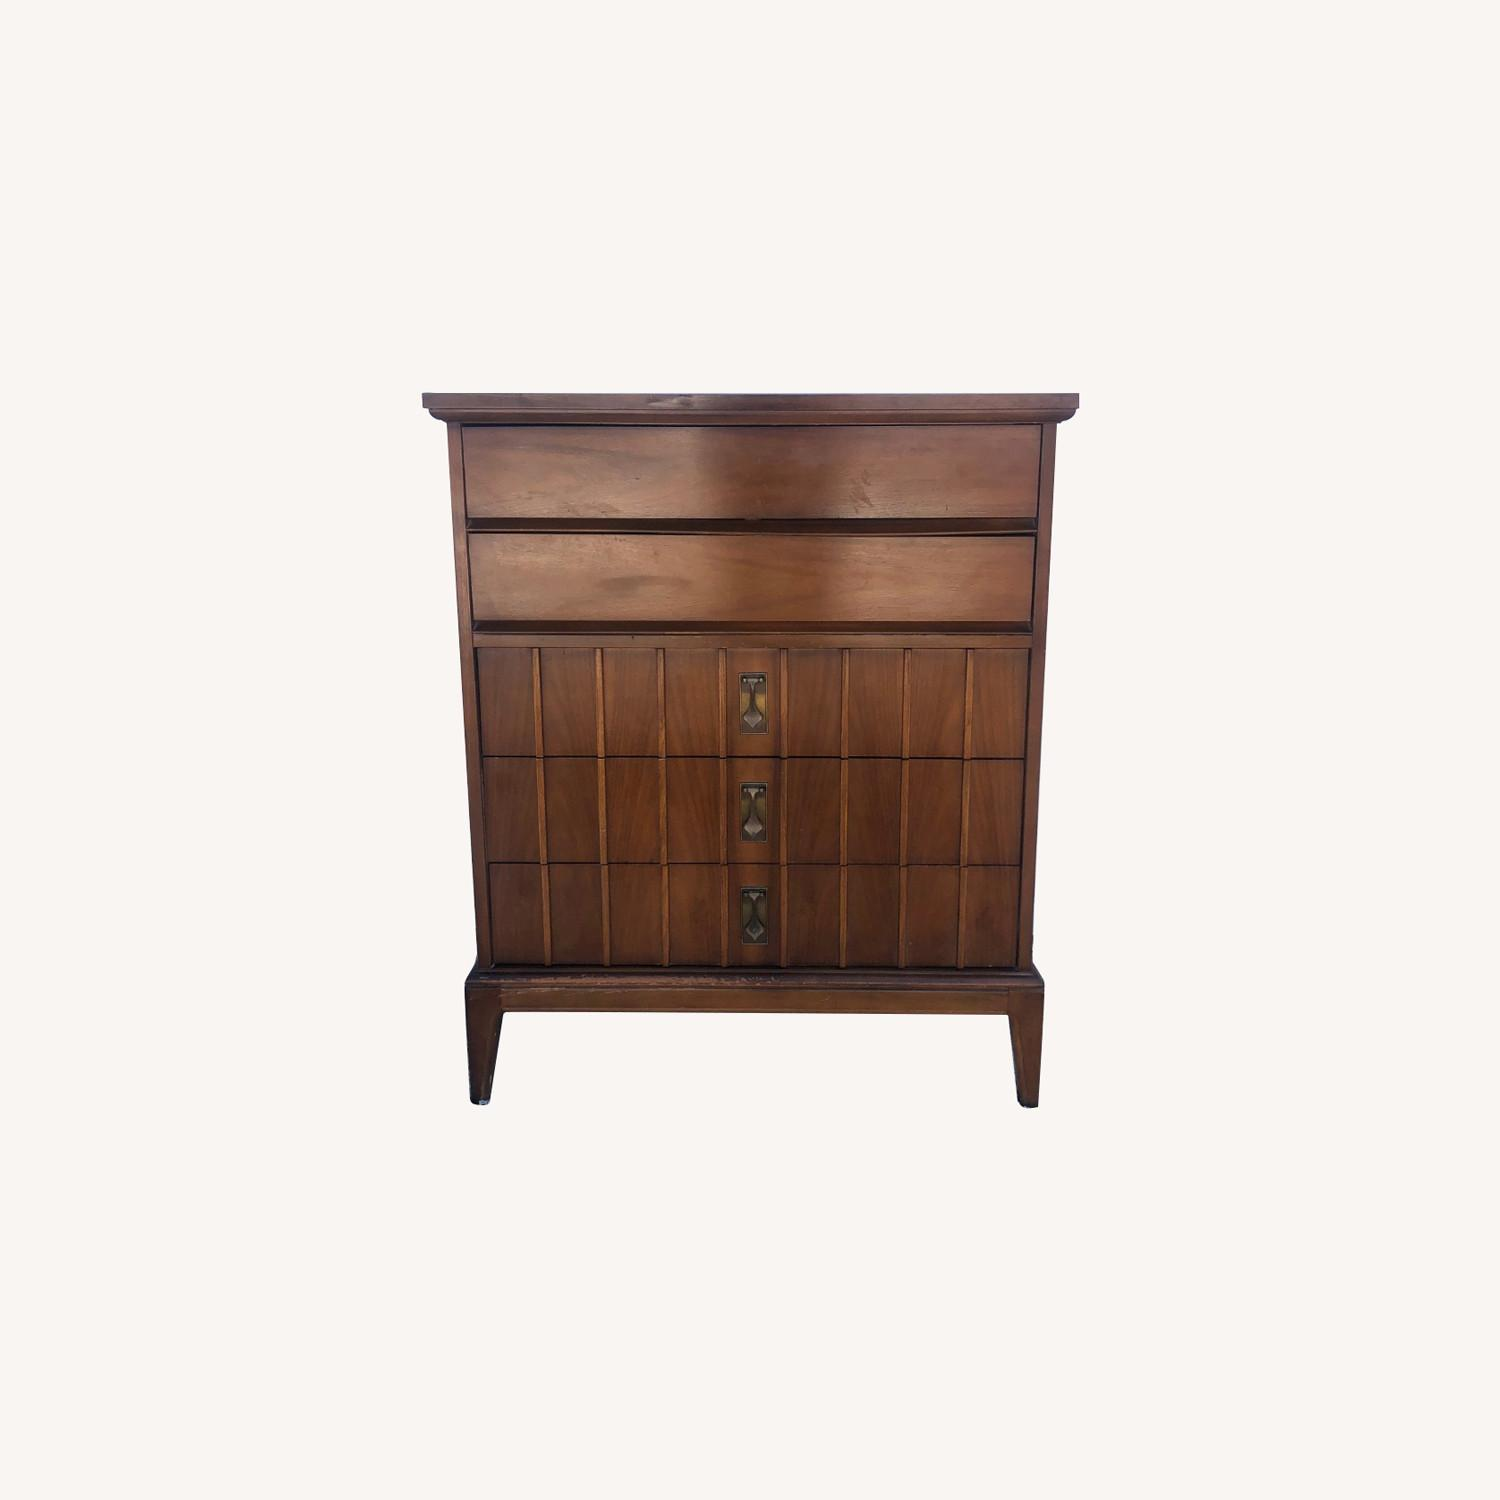 Mid Century Highboy Dresser with 5 Drawers - image-0